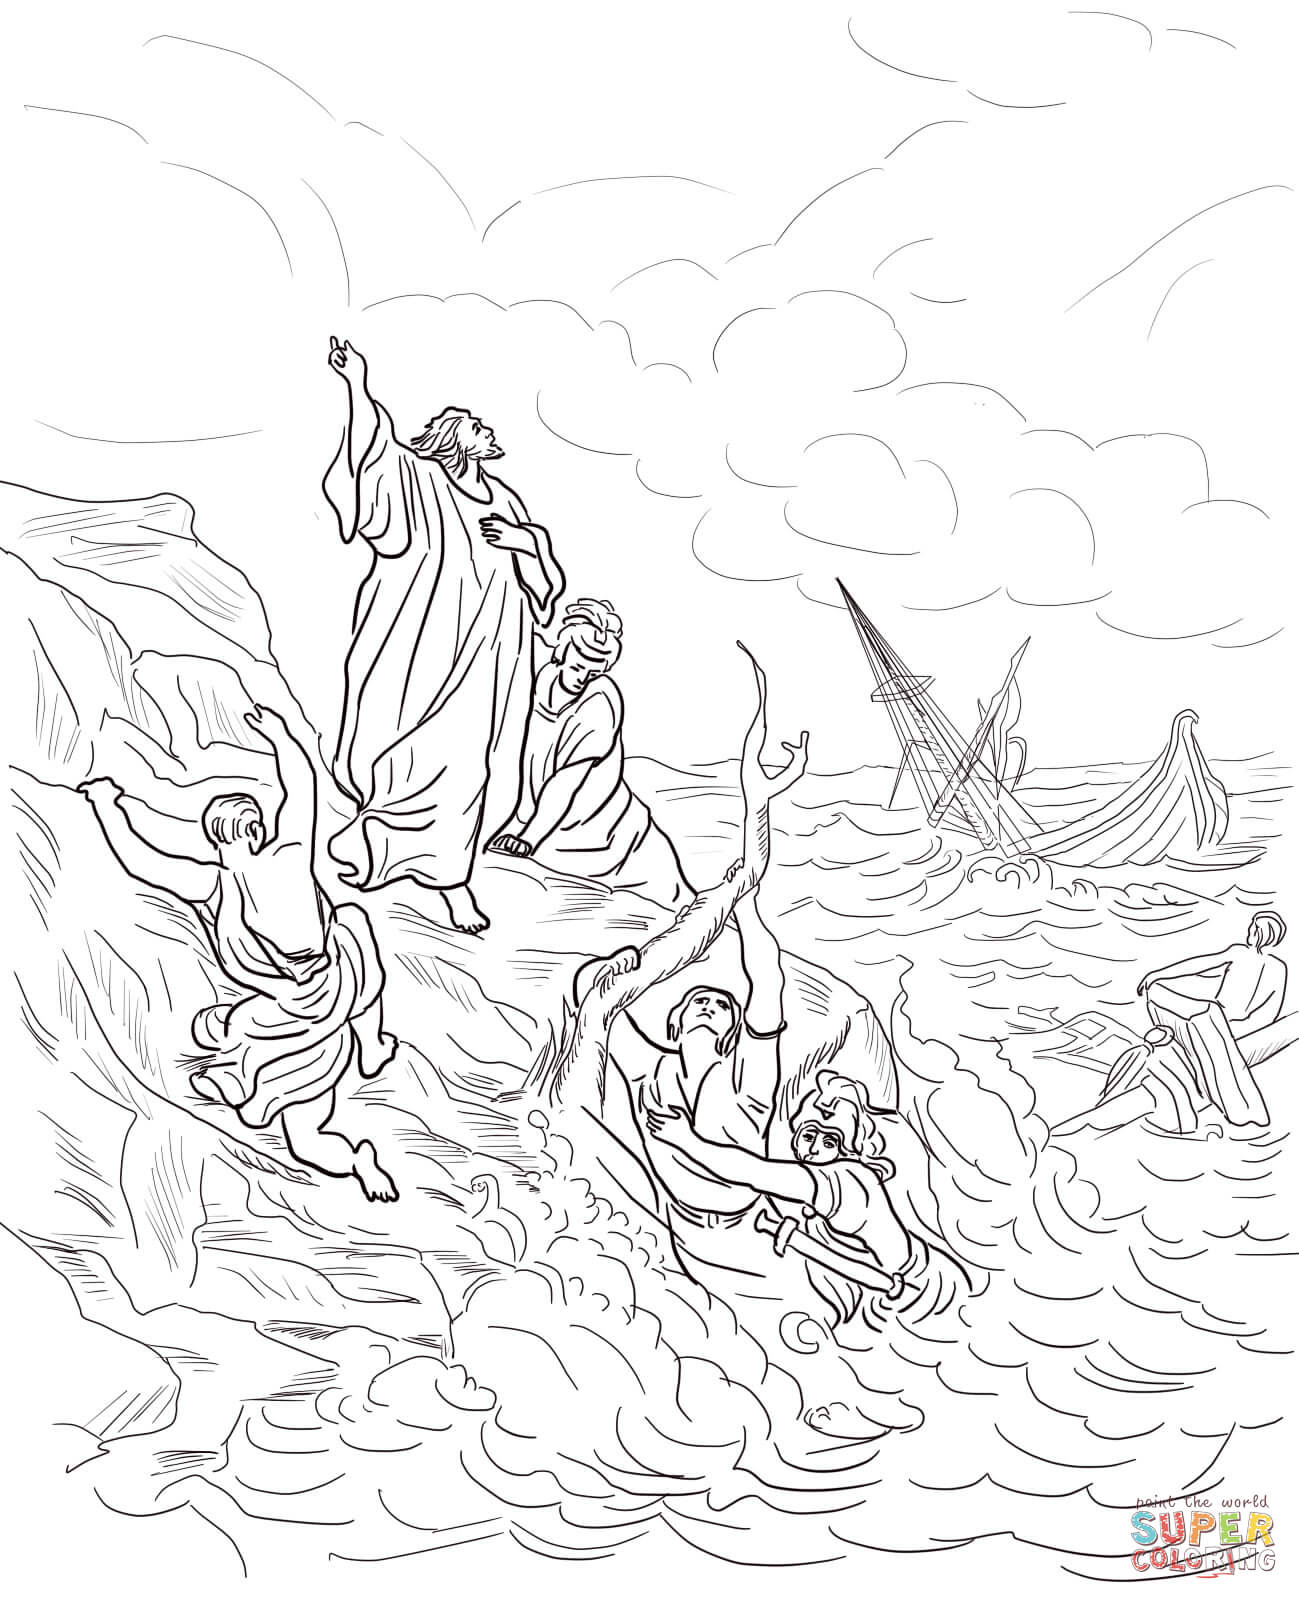 Apostle Paul Shipwrecked Coloring Page